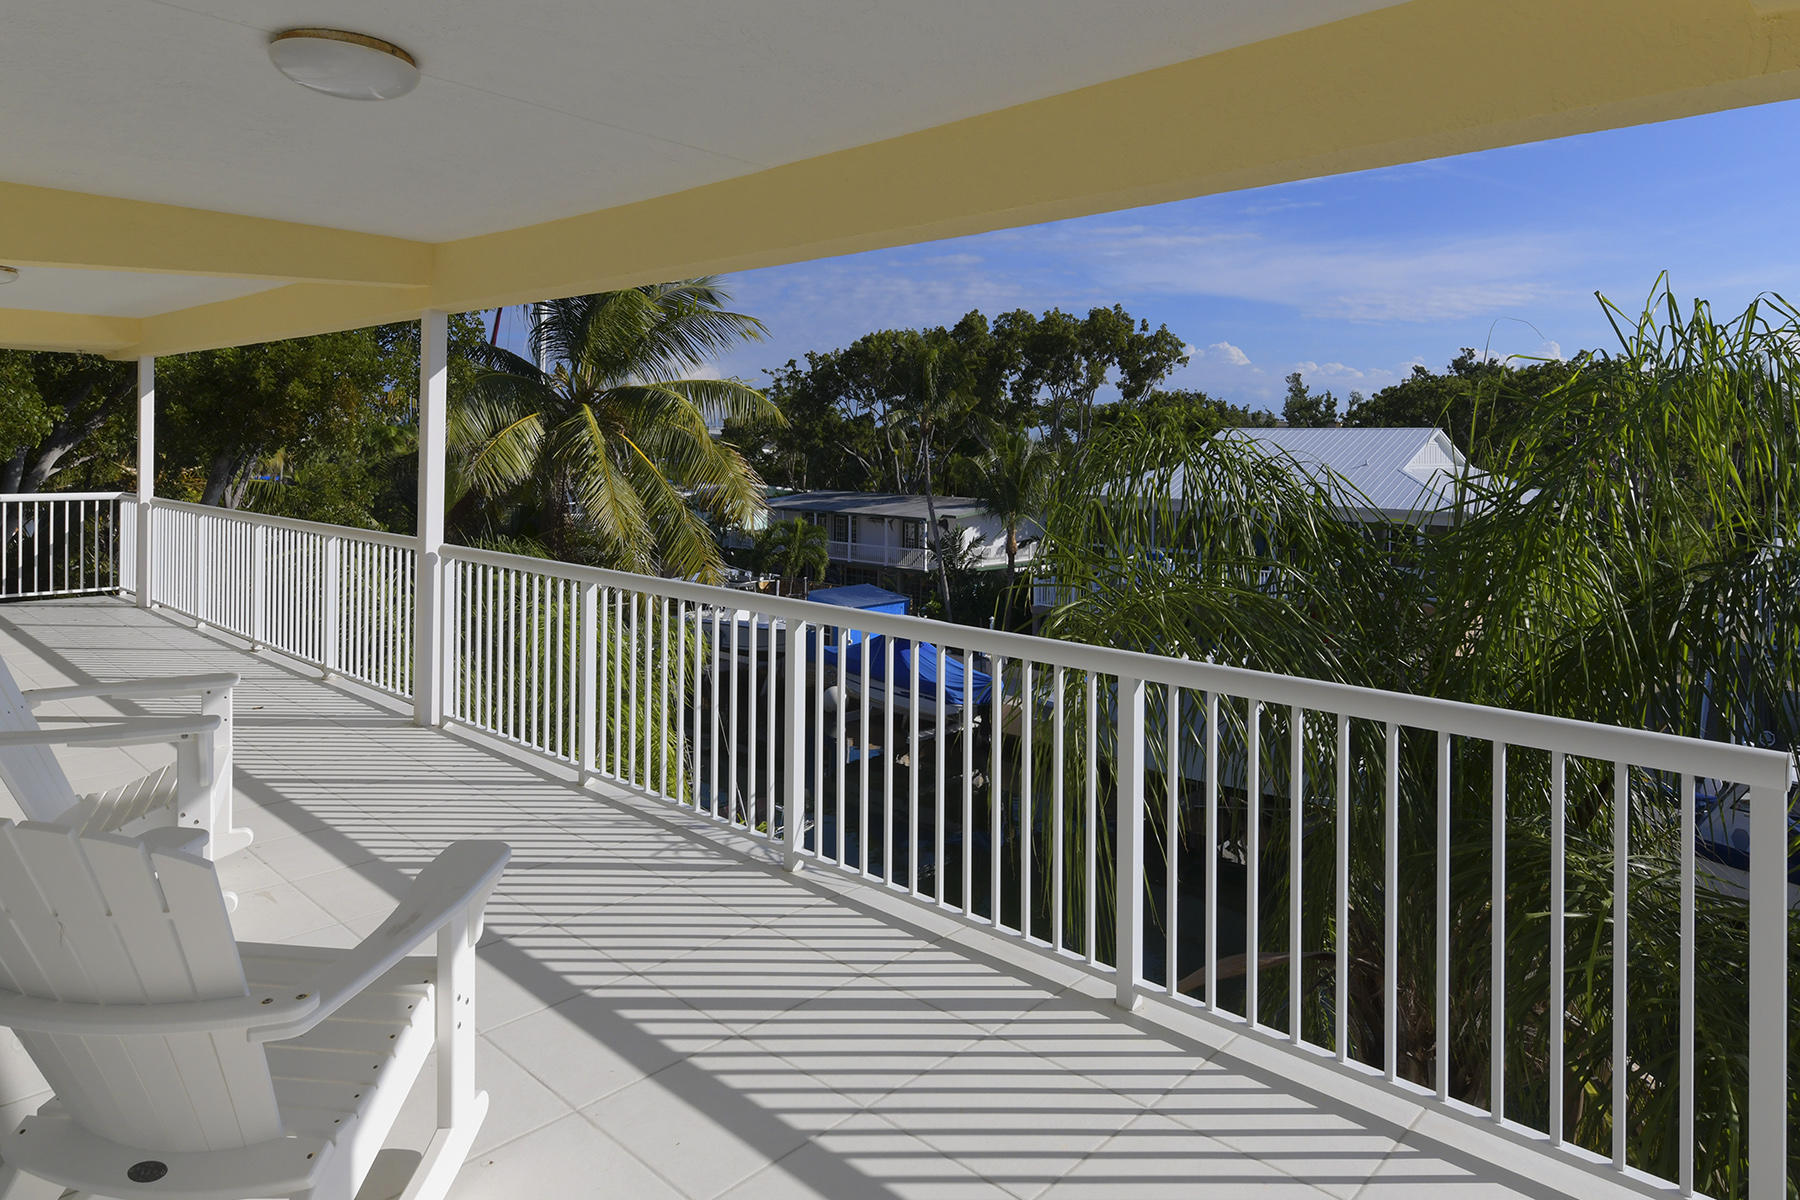 single family homes for Active at 132 Plantation Drive, Tavernier, FL 132 Plantation Drive Tavernier, Florida 33070 United States